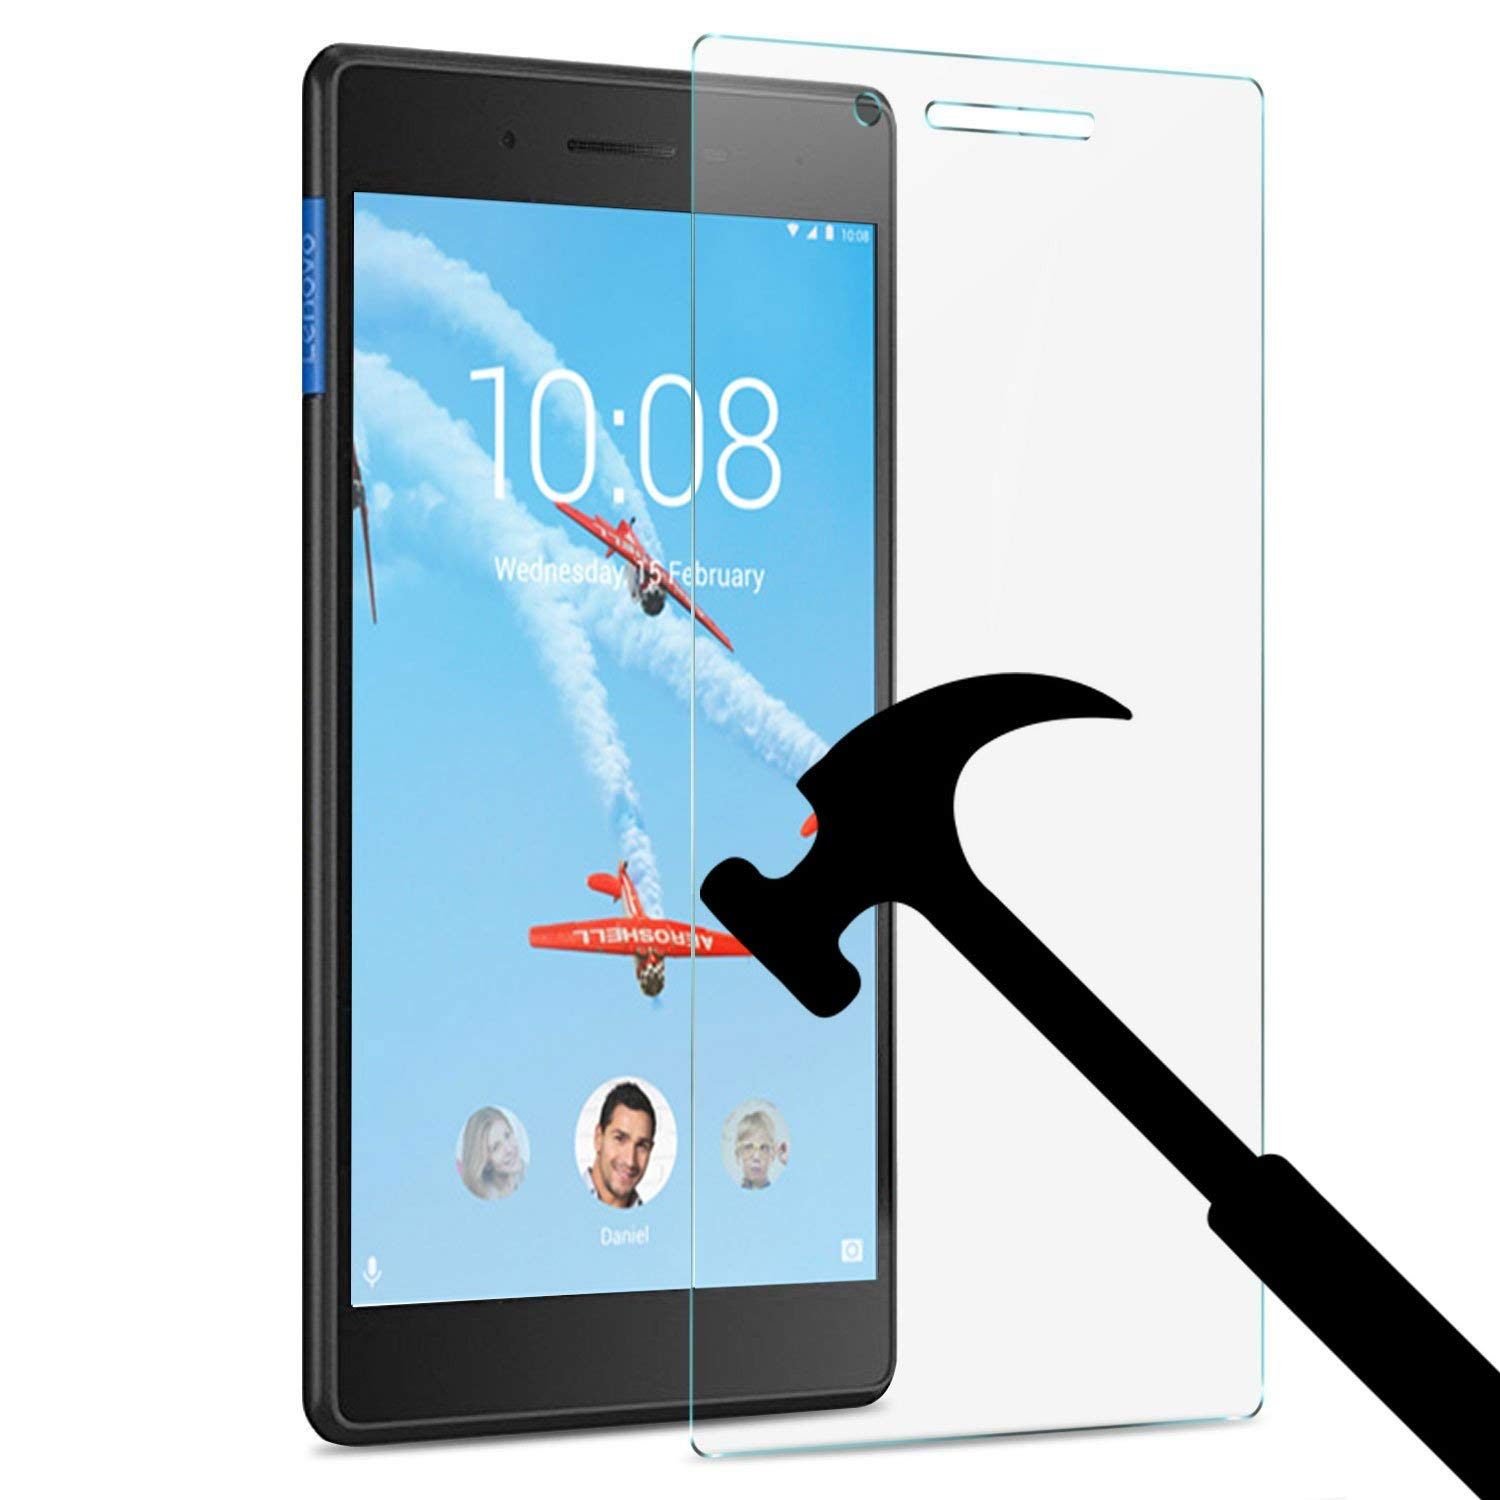 9H Tempered Glass For Lenovo Tab 7 Protective Film Case For TB-7304F TB 7304F 7304 7304I 7304X Tab4 7.0 Tablet Screen Protector9H Tempered Glass For Lenovo Tab 7 Protective Film Case For TB-7304F TB 7304F 7304 7304I 7304X Tab4 7.0 Tablet Screen Protector